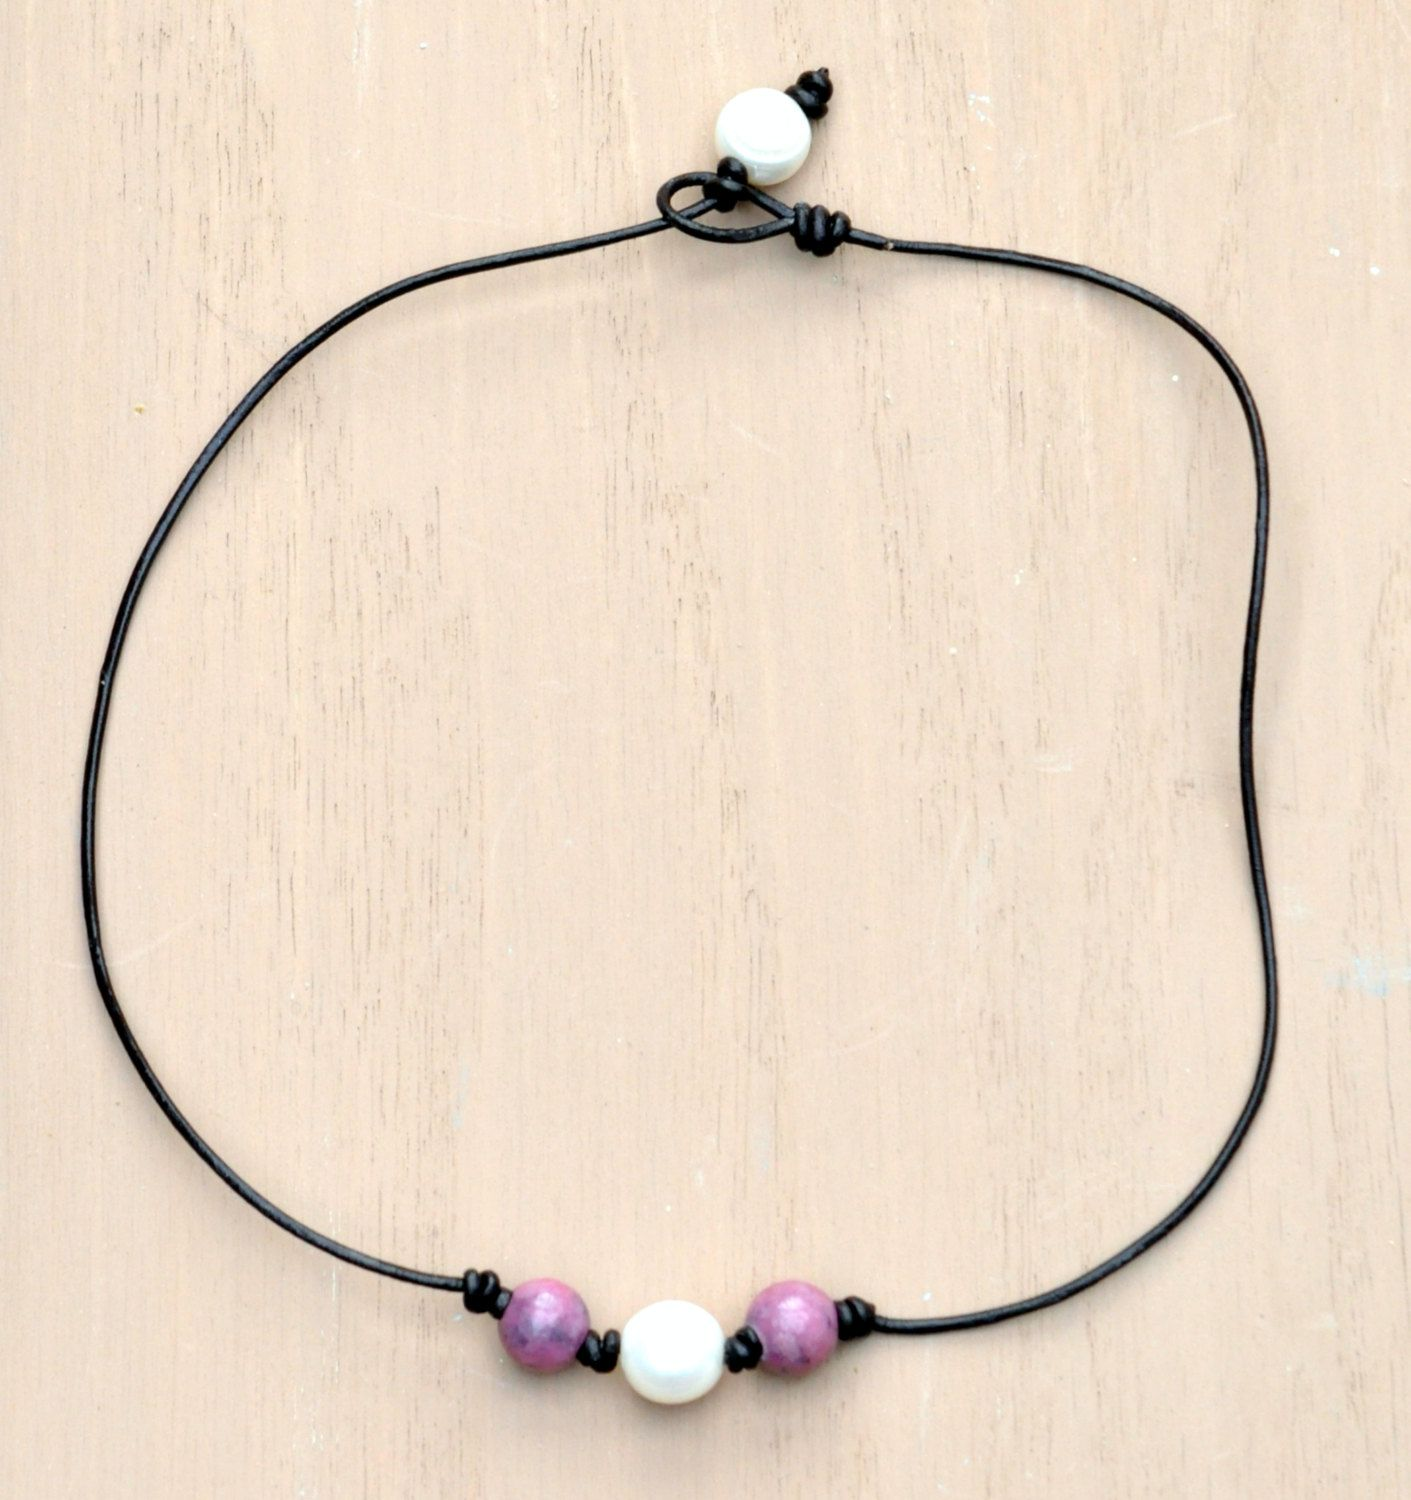 Freshwater Pearl , Rhodonite and Leather Choker Necklace/Pink Gemstone/White Pearl Necklace/Leather Jewelry/Pearl Necklace/Beaded Pearls by BonafideBeads on Etsy